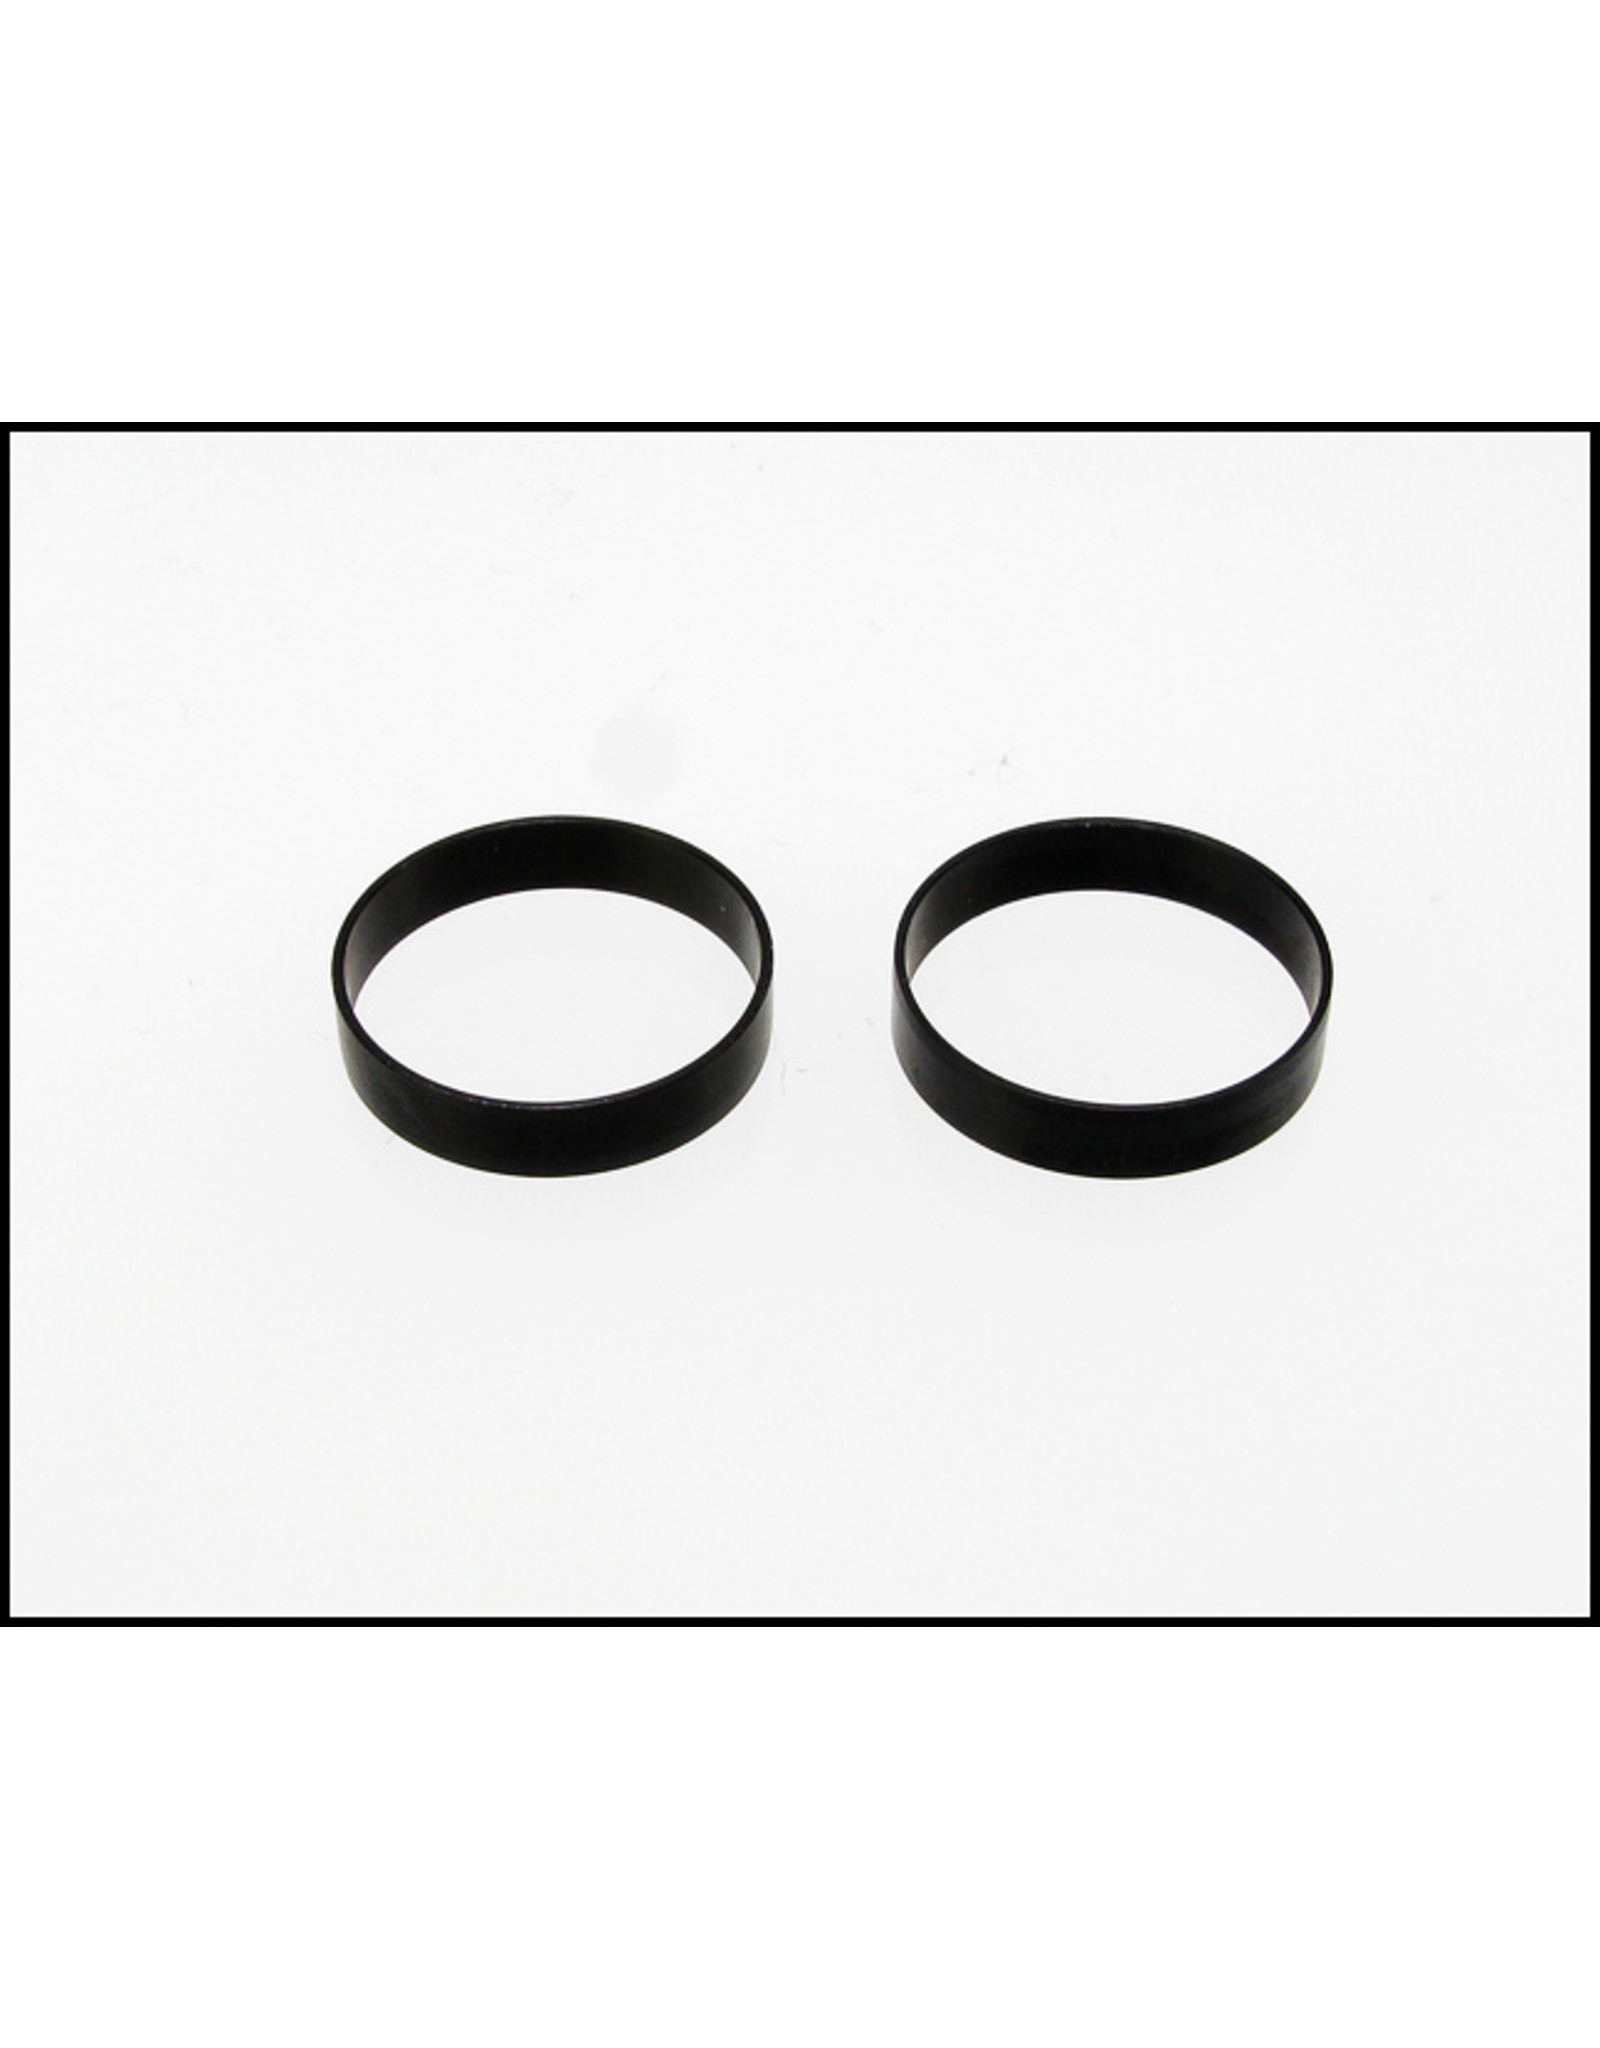 PN Racing PN Racing Mini-Z Wheel Outer Lip for Rear Wheel (2pcs Black) (300804K)